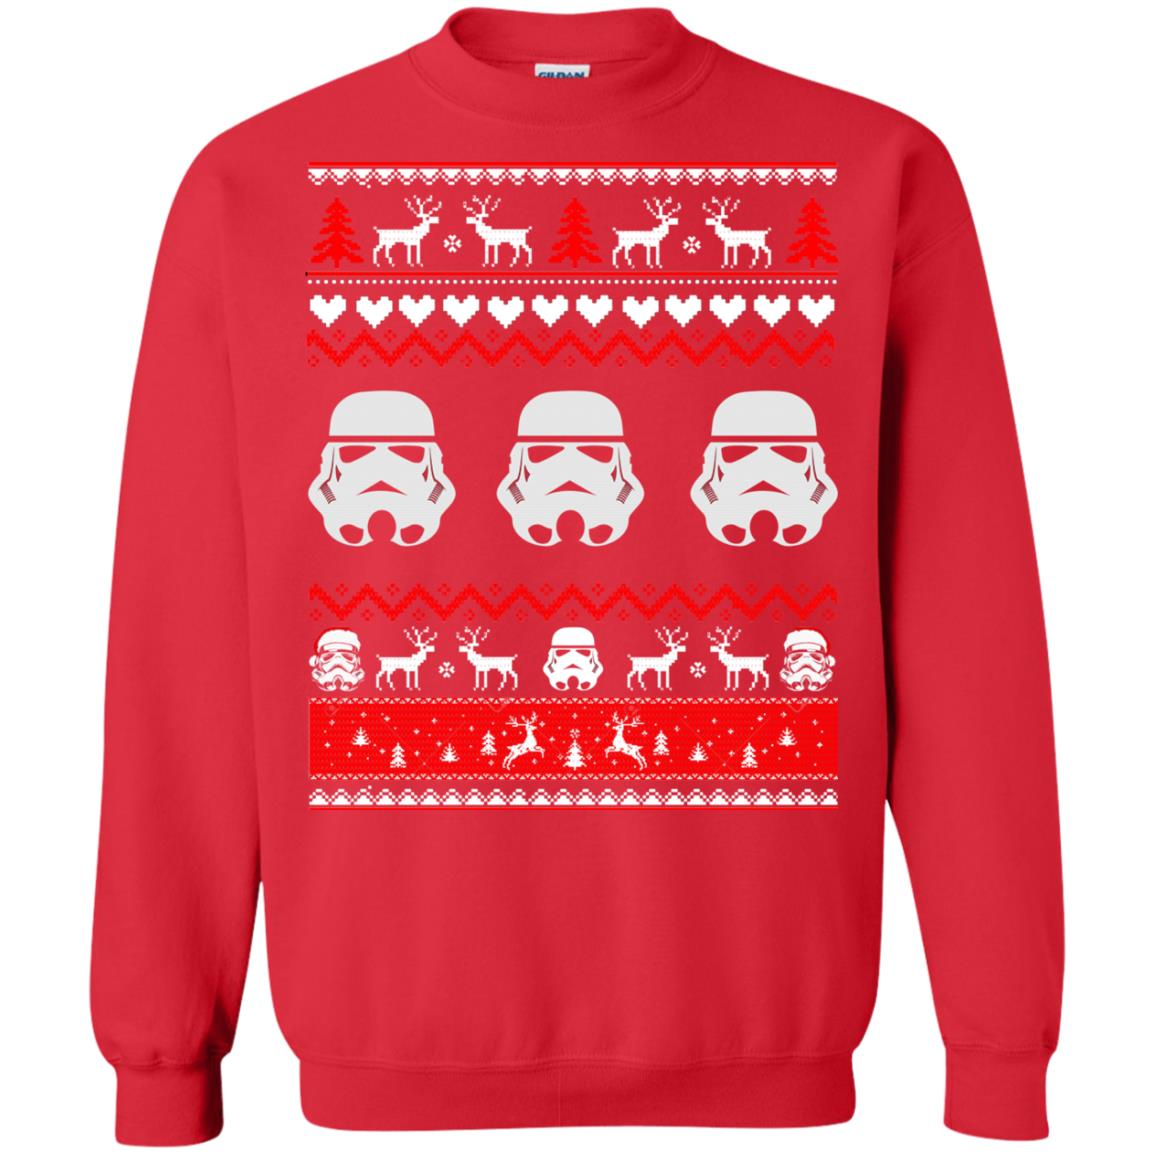 image 1730 - Stormtrooper Star Wars Ugly Christmas Sweatshirt, Shirt